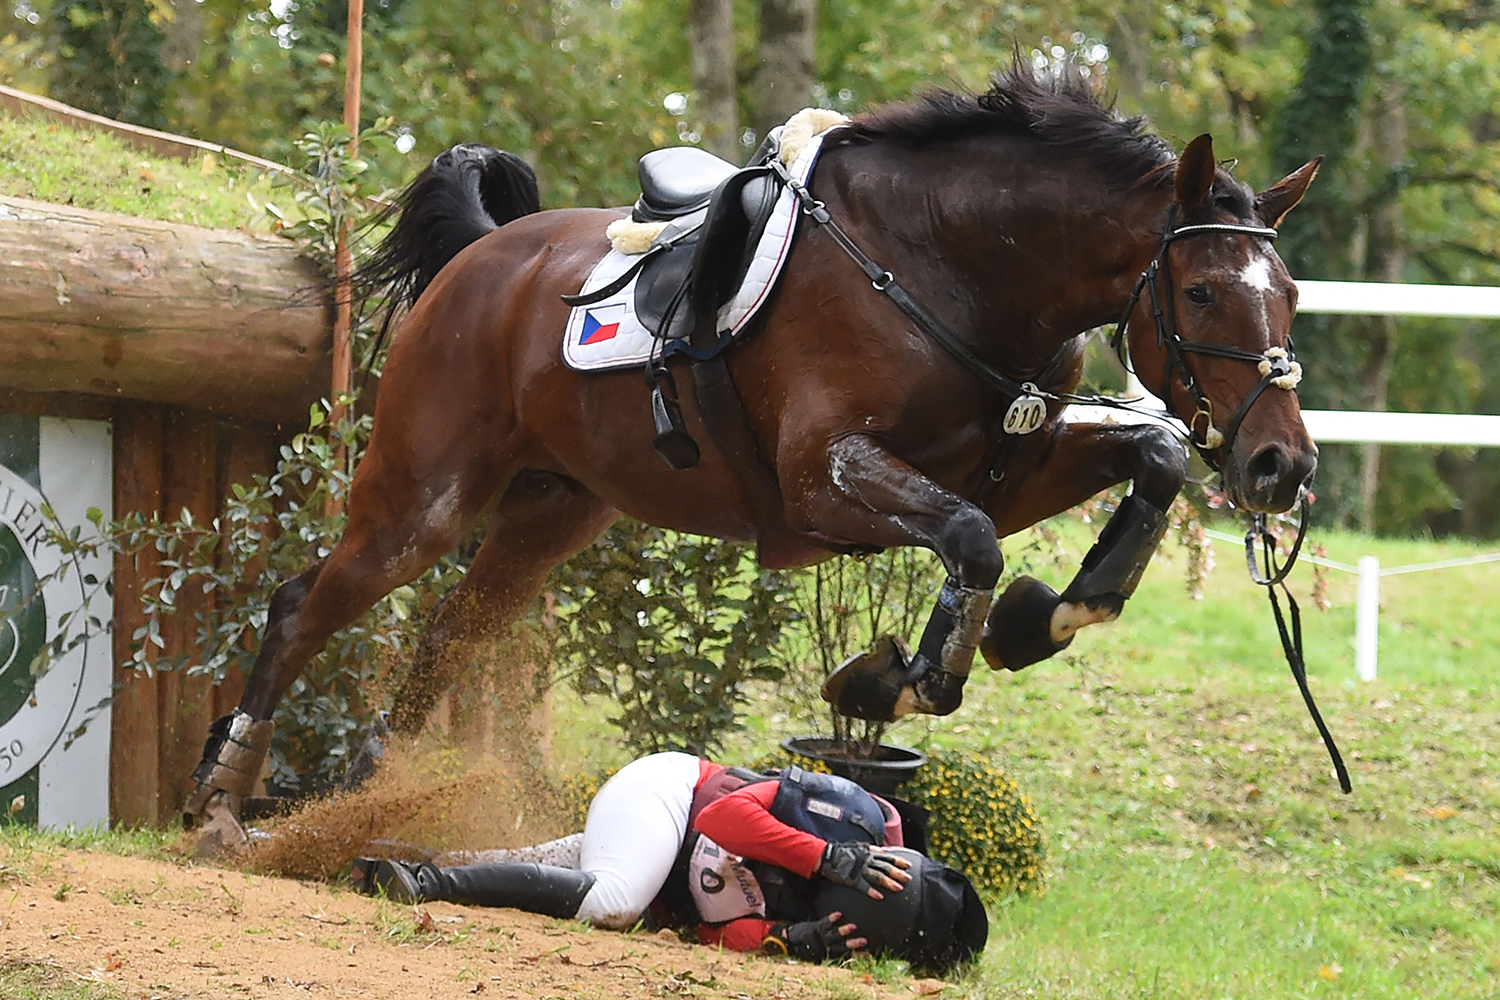 A horse jumps to avoid thrown Czech rider Gabriela Slavikova during Mondial du Lion, a world championship horse-riding competition in Le Lion-d'Angers, western France, on Oct. 17. JEAN-FRANCOIS MONIER/AFP via Getty Images